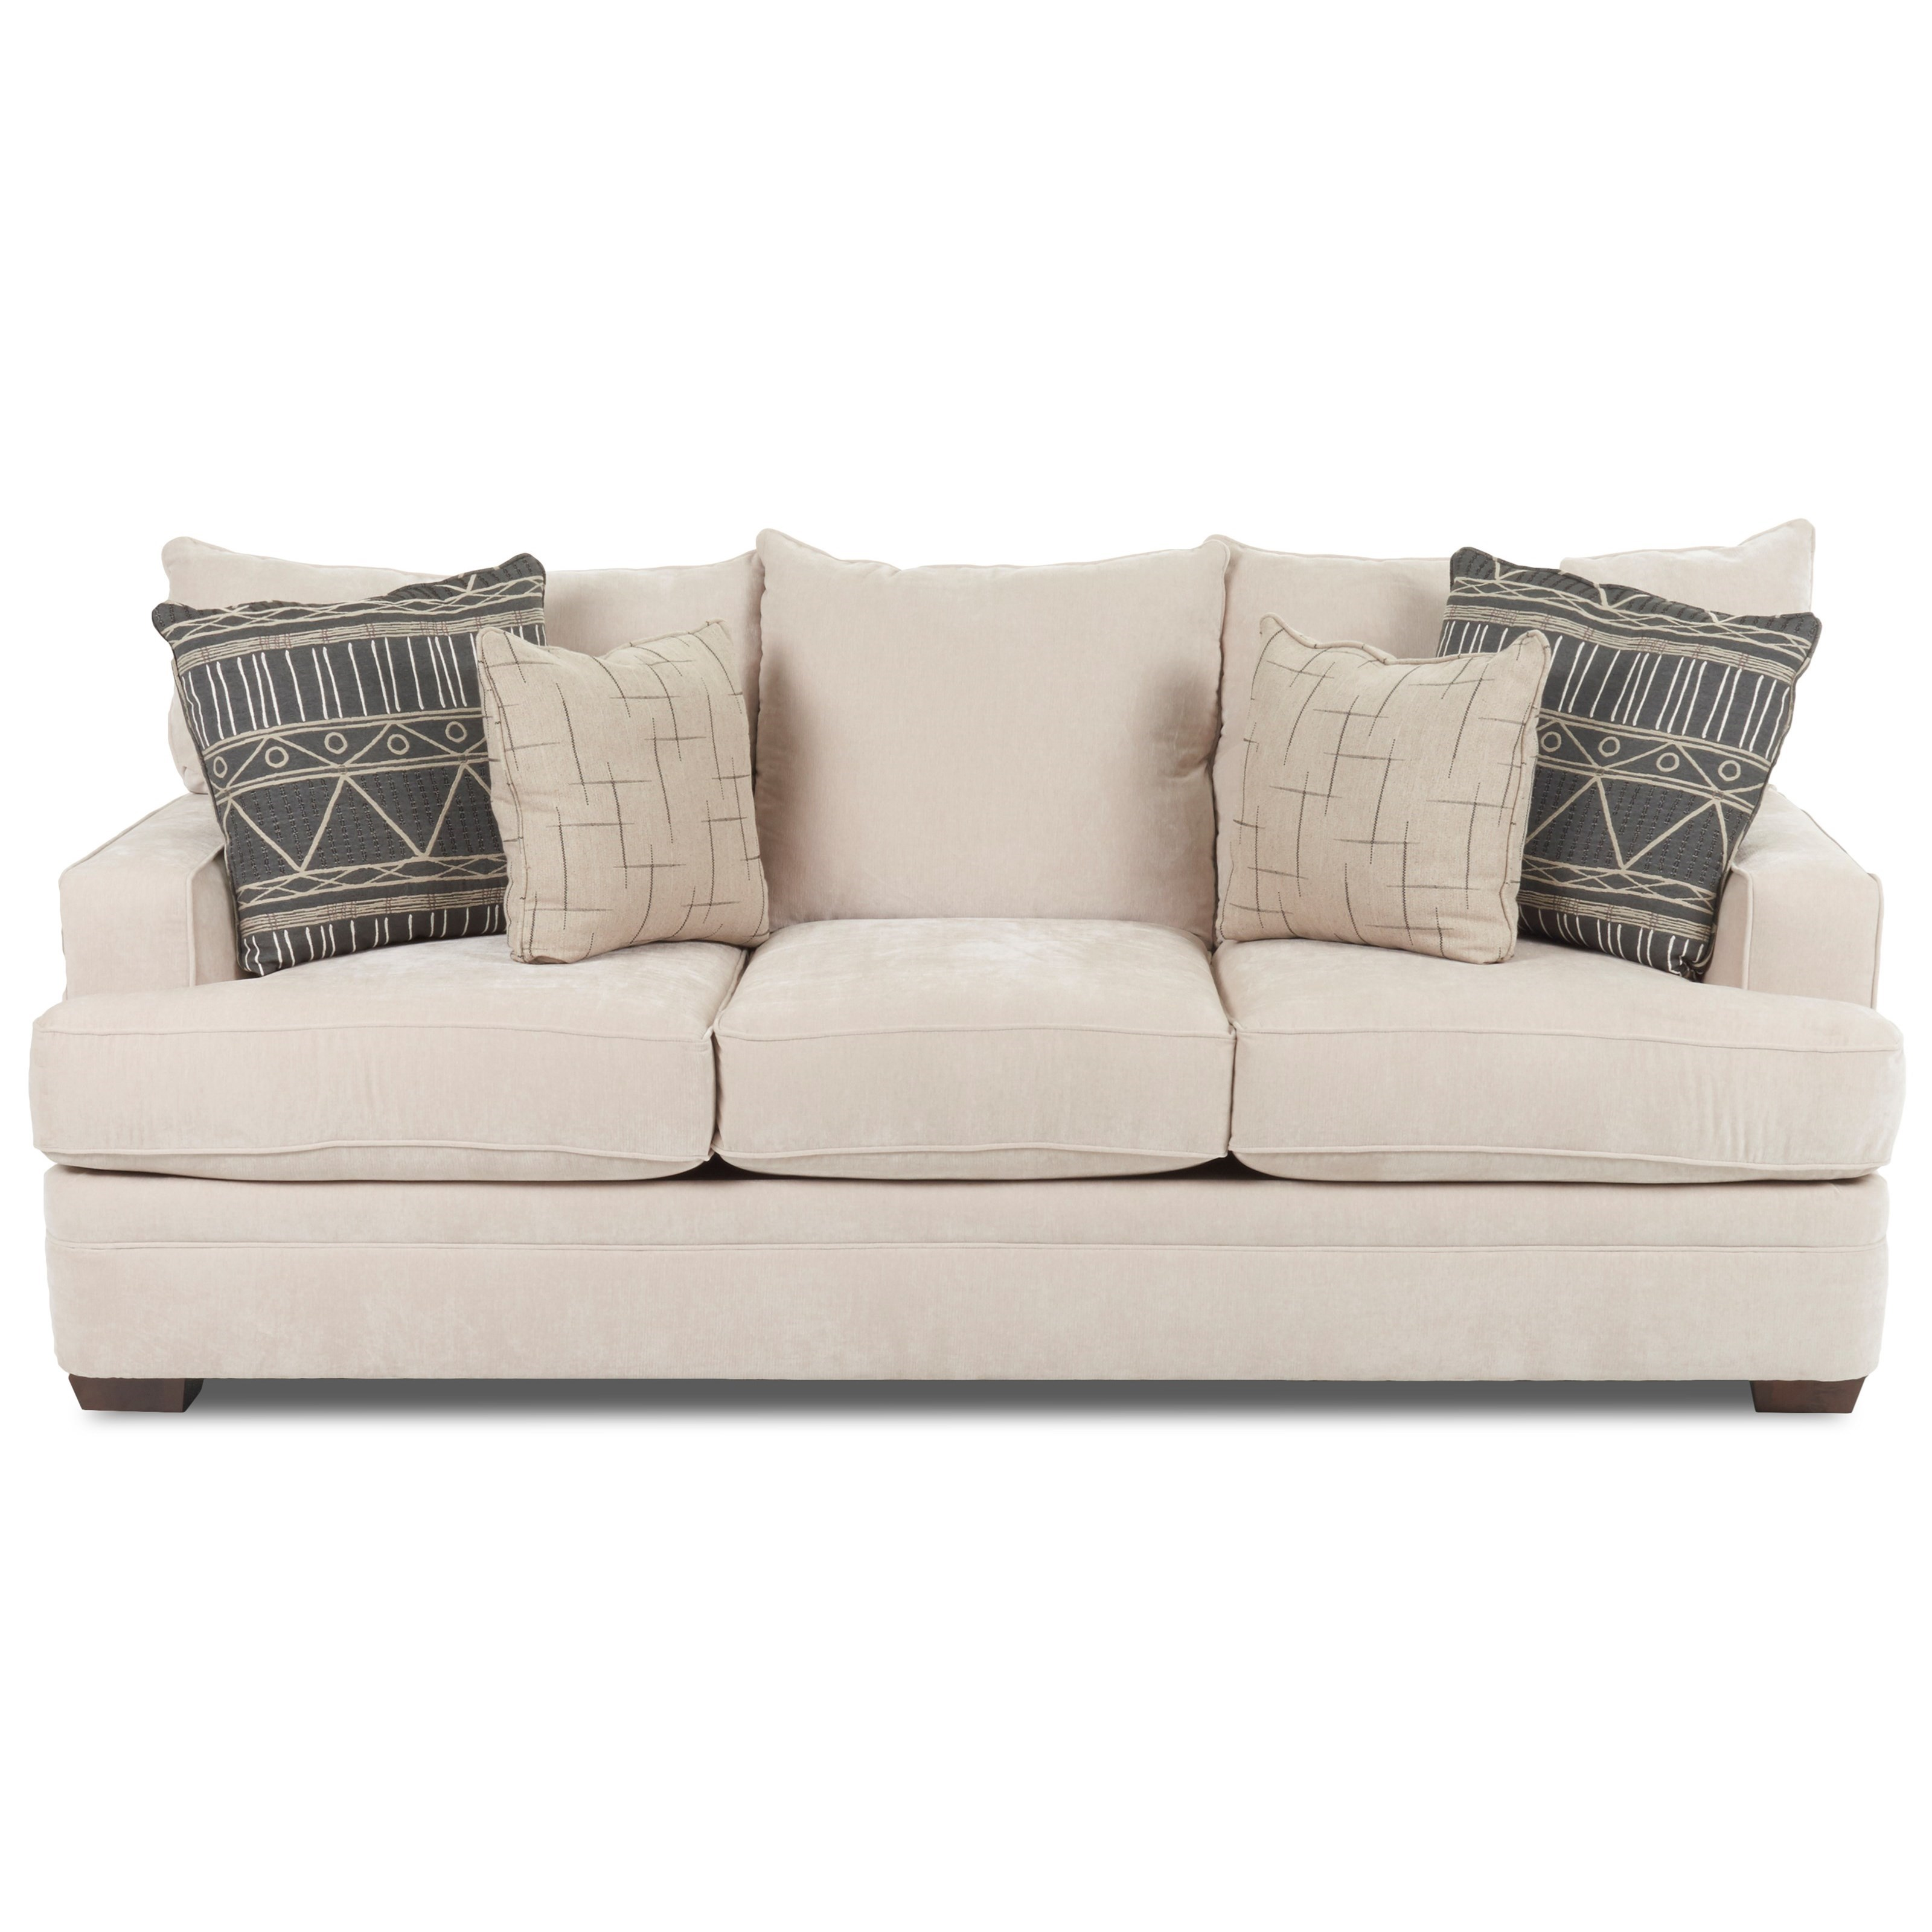 Metropia Cady Casual Sofa With Square Track Arms Ruby Gordon Furniture Mattresses Sofas